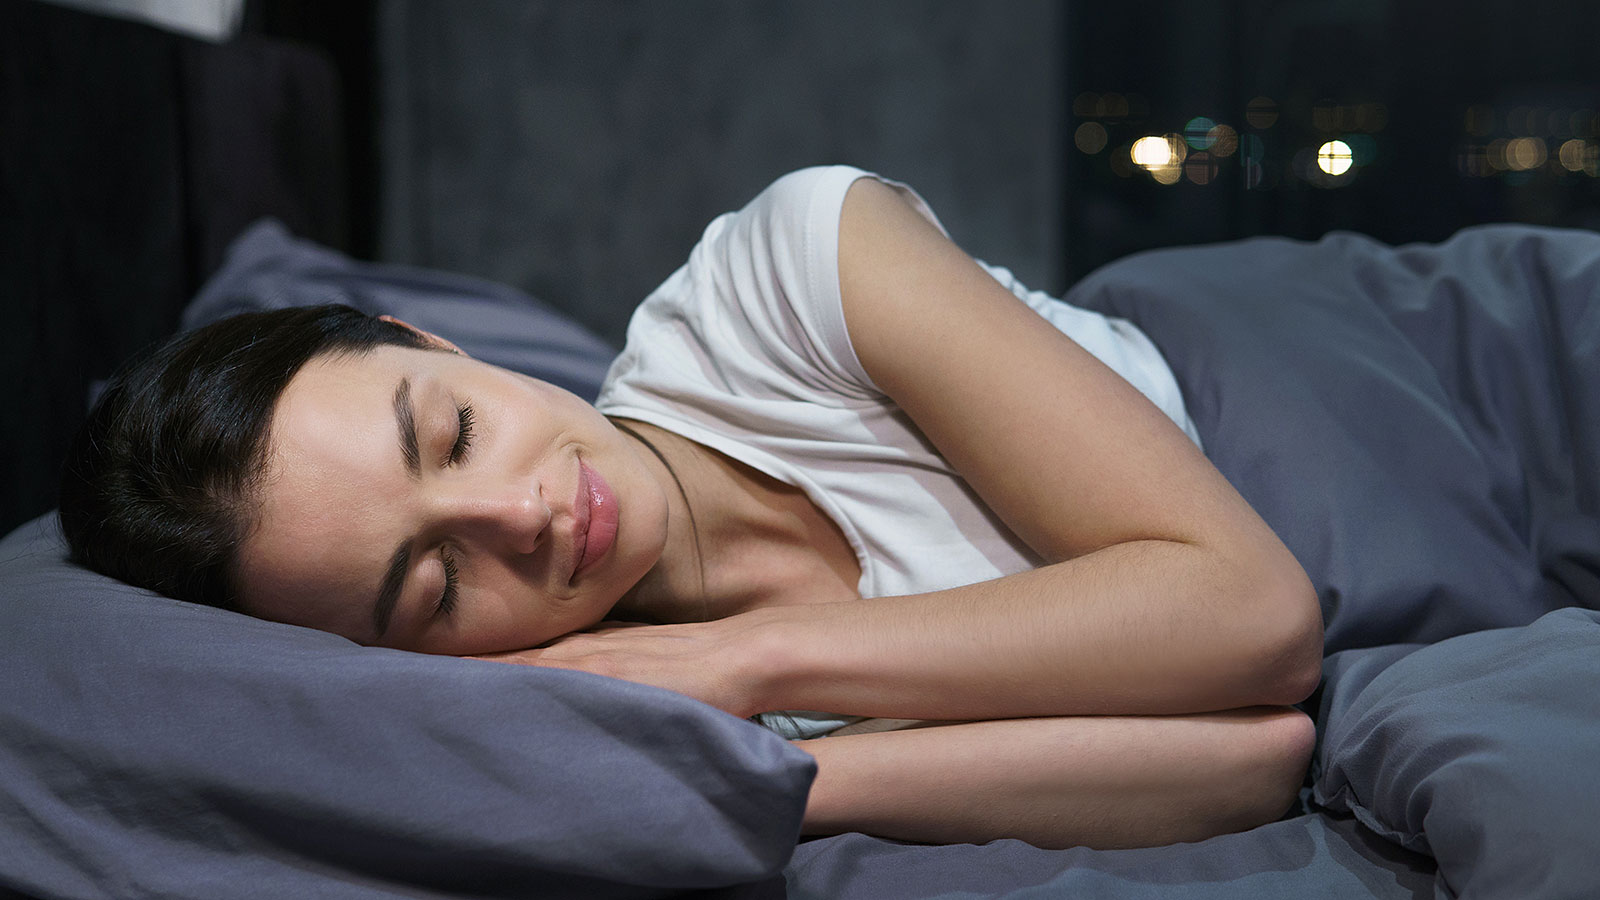 Too hot to sleep? Here's how to keep cool in bed